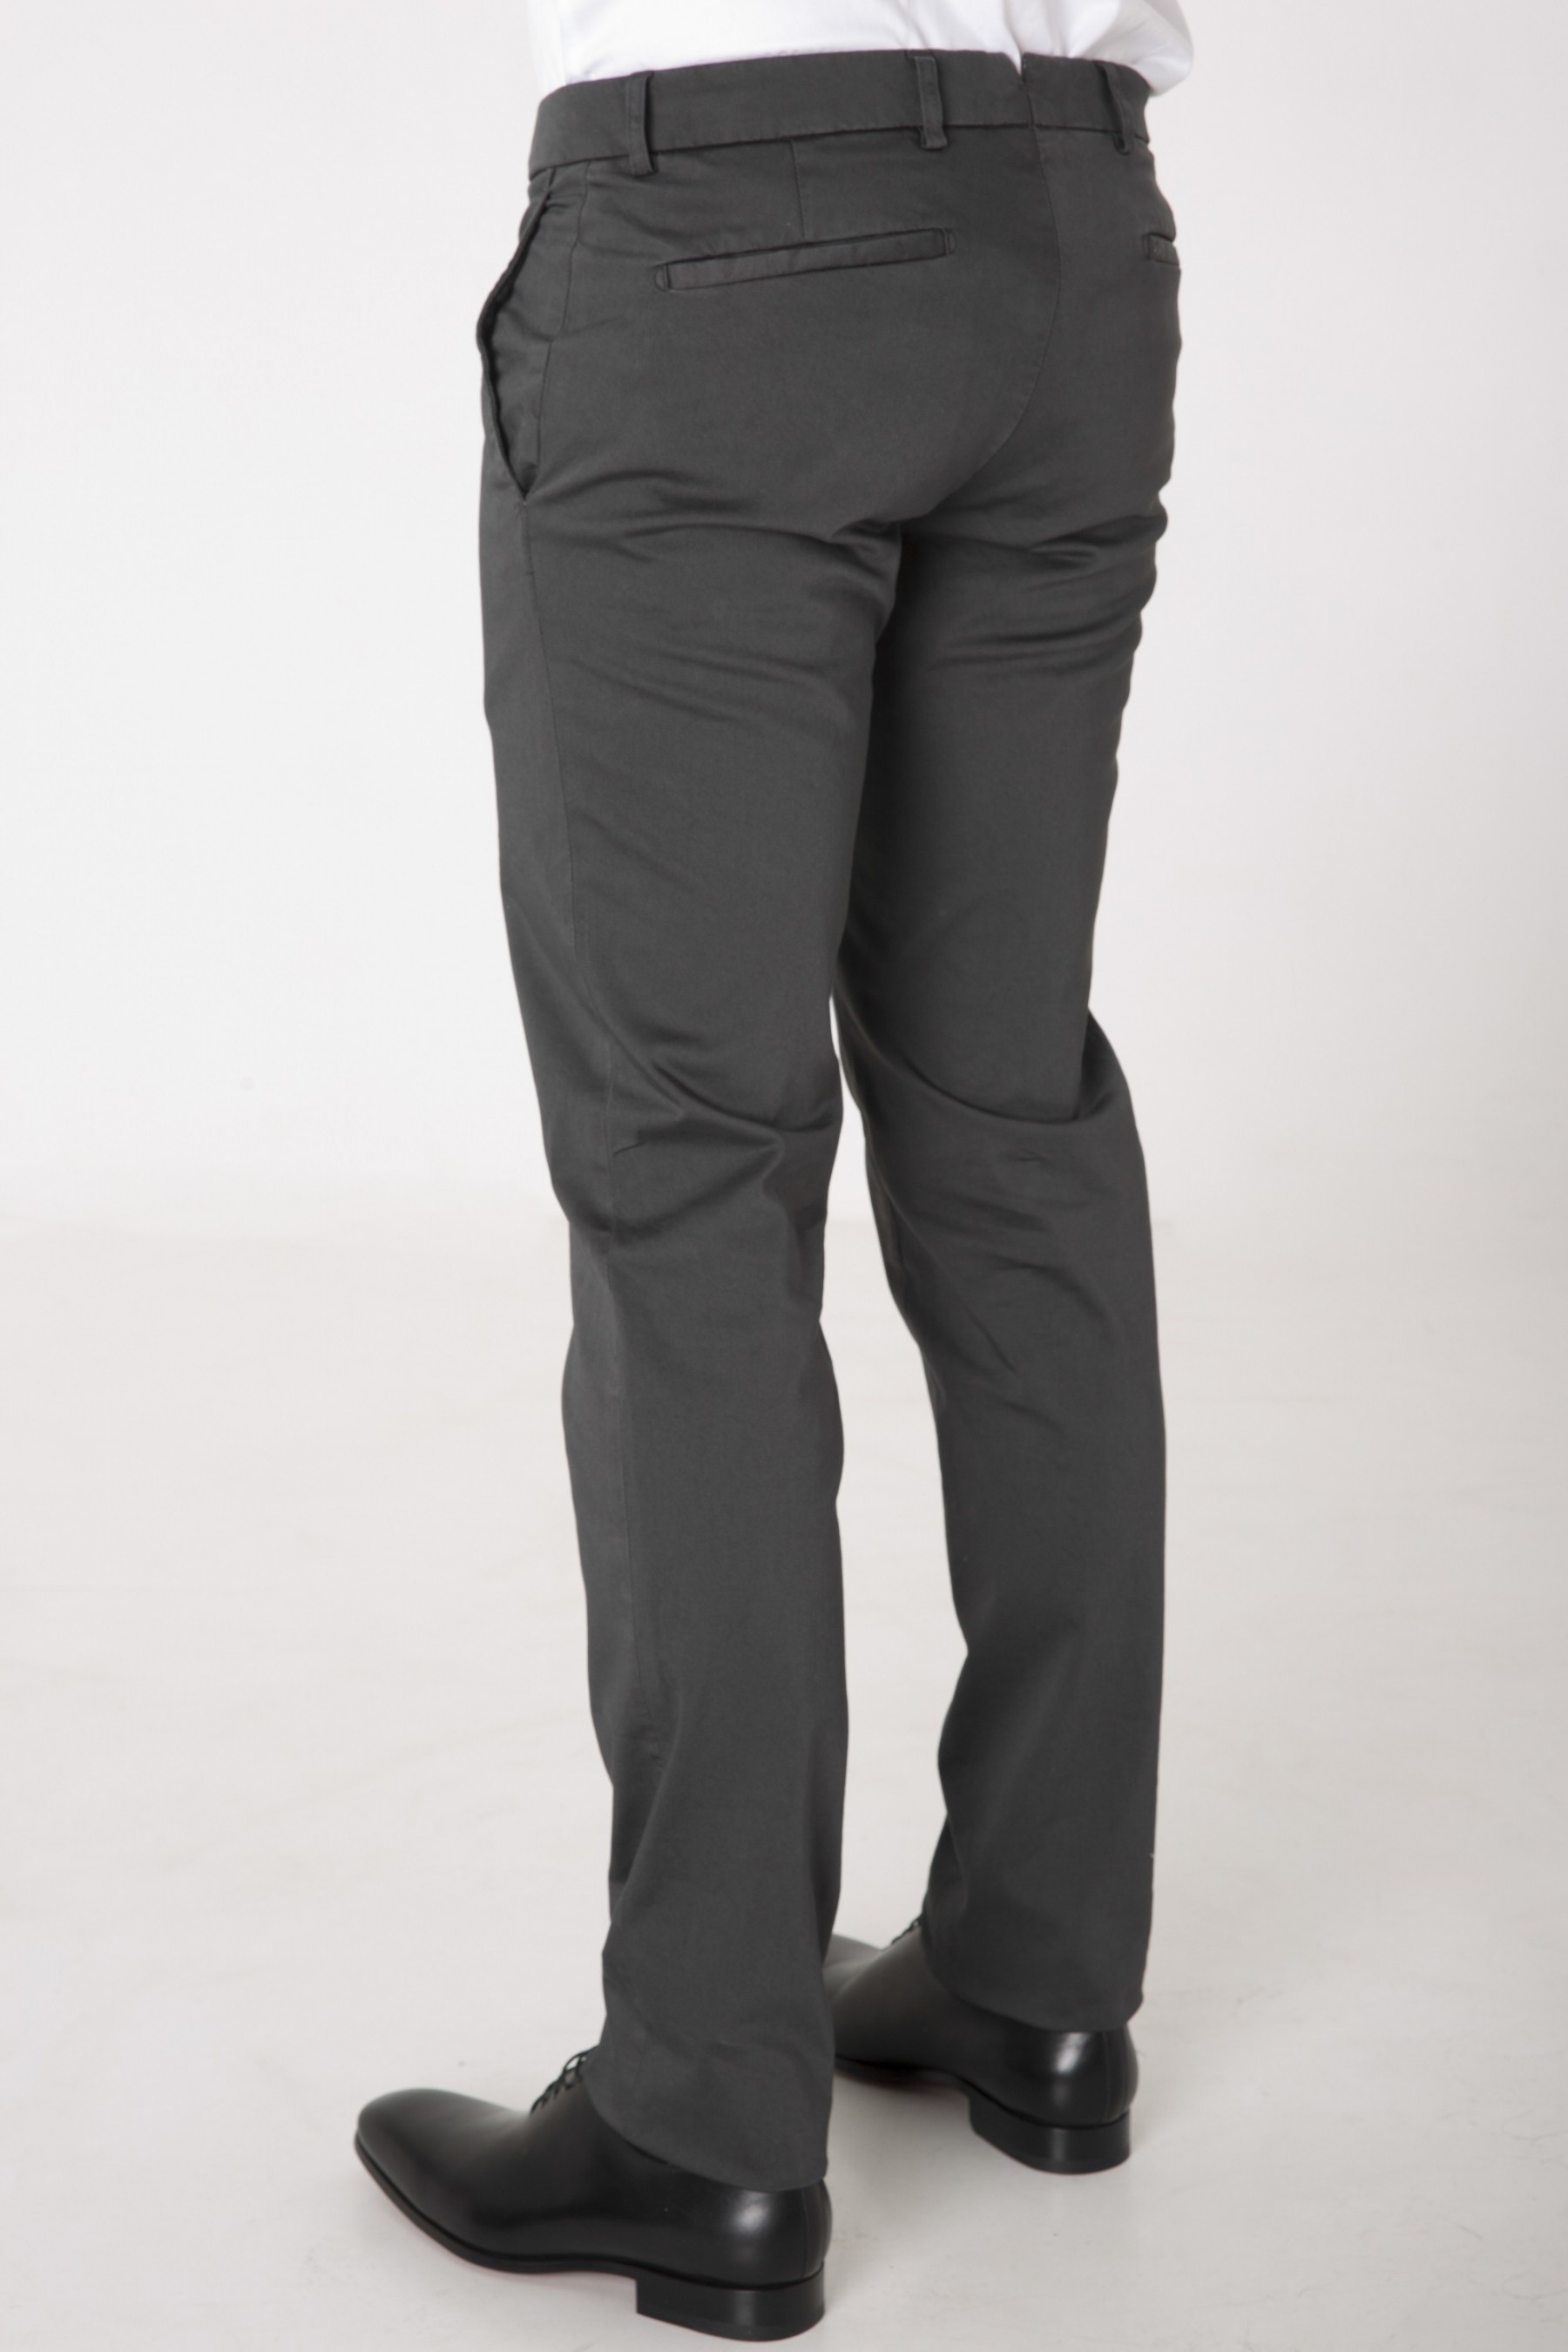 pantalons chino homme chino gris anthracite homme. Black Bedroom Furniture Sets. Home Design Ideas